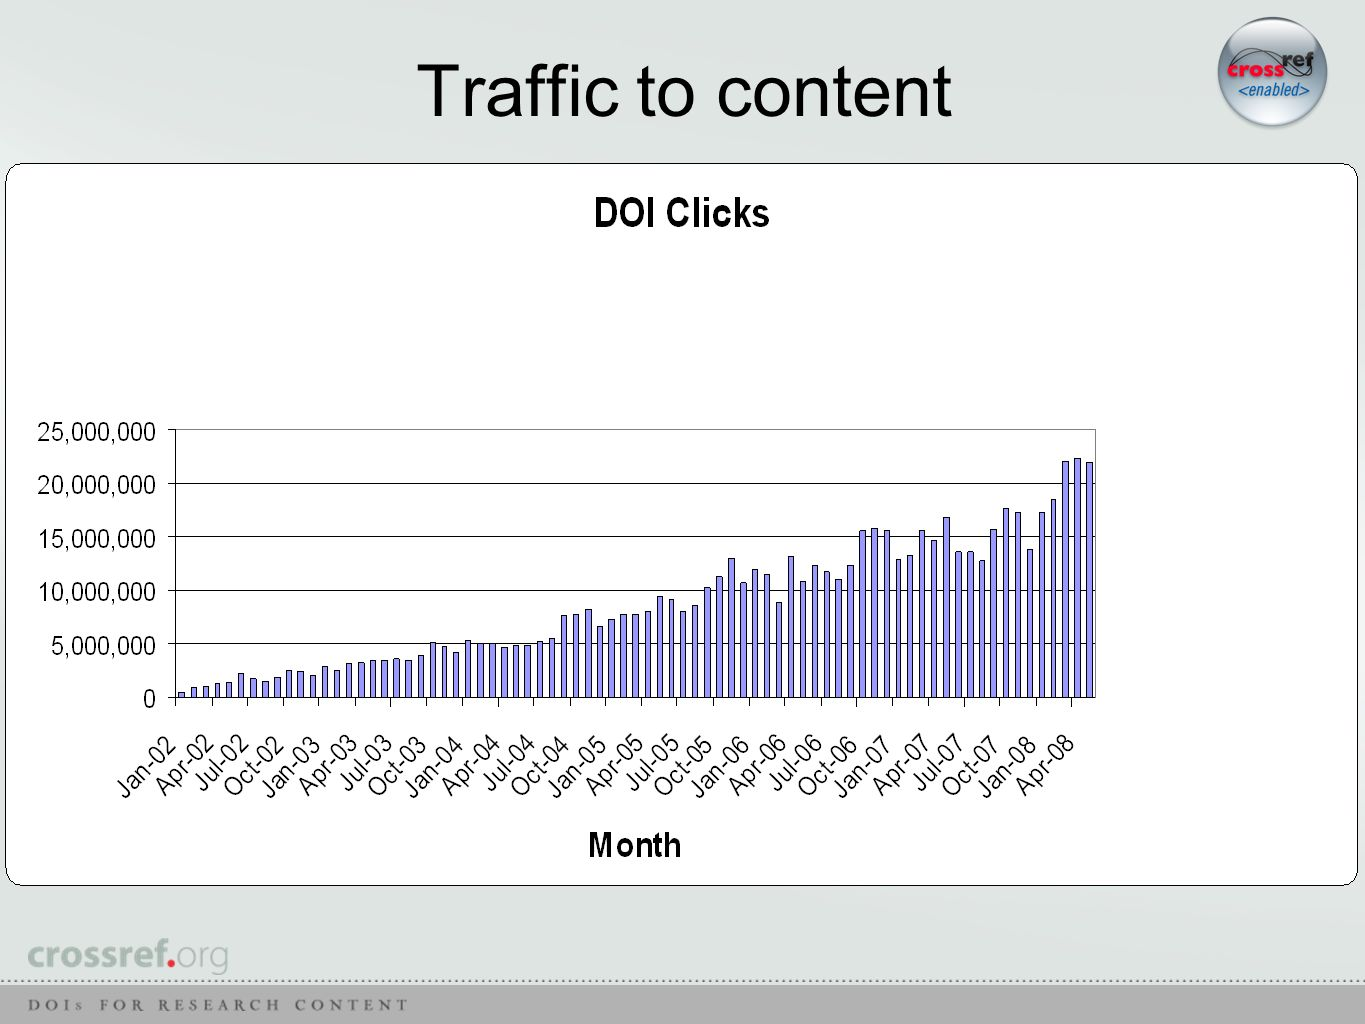 Traffic to content